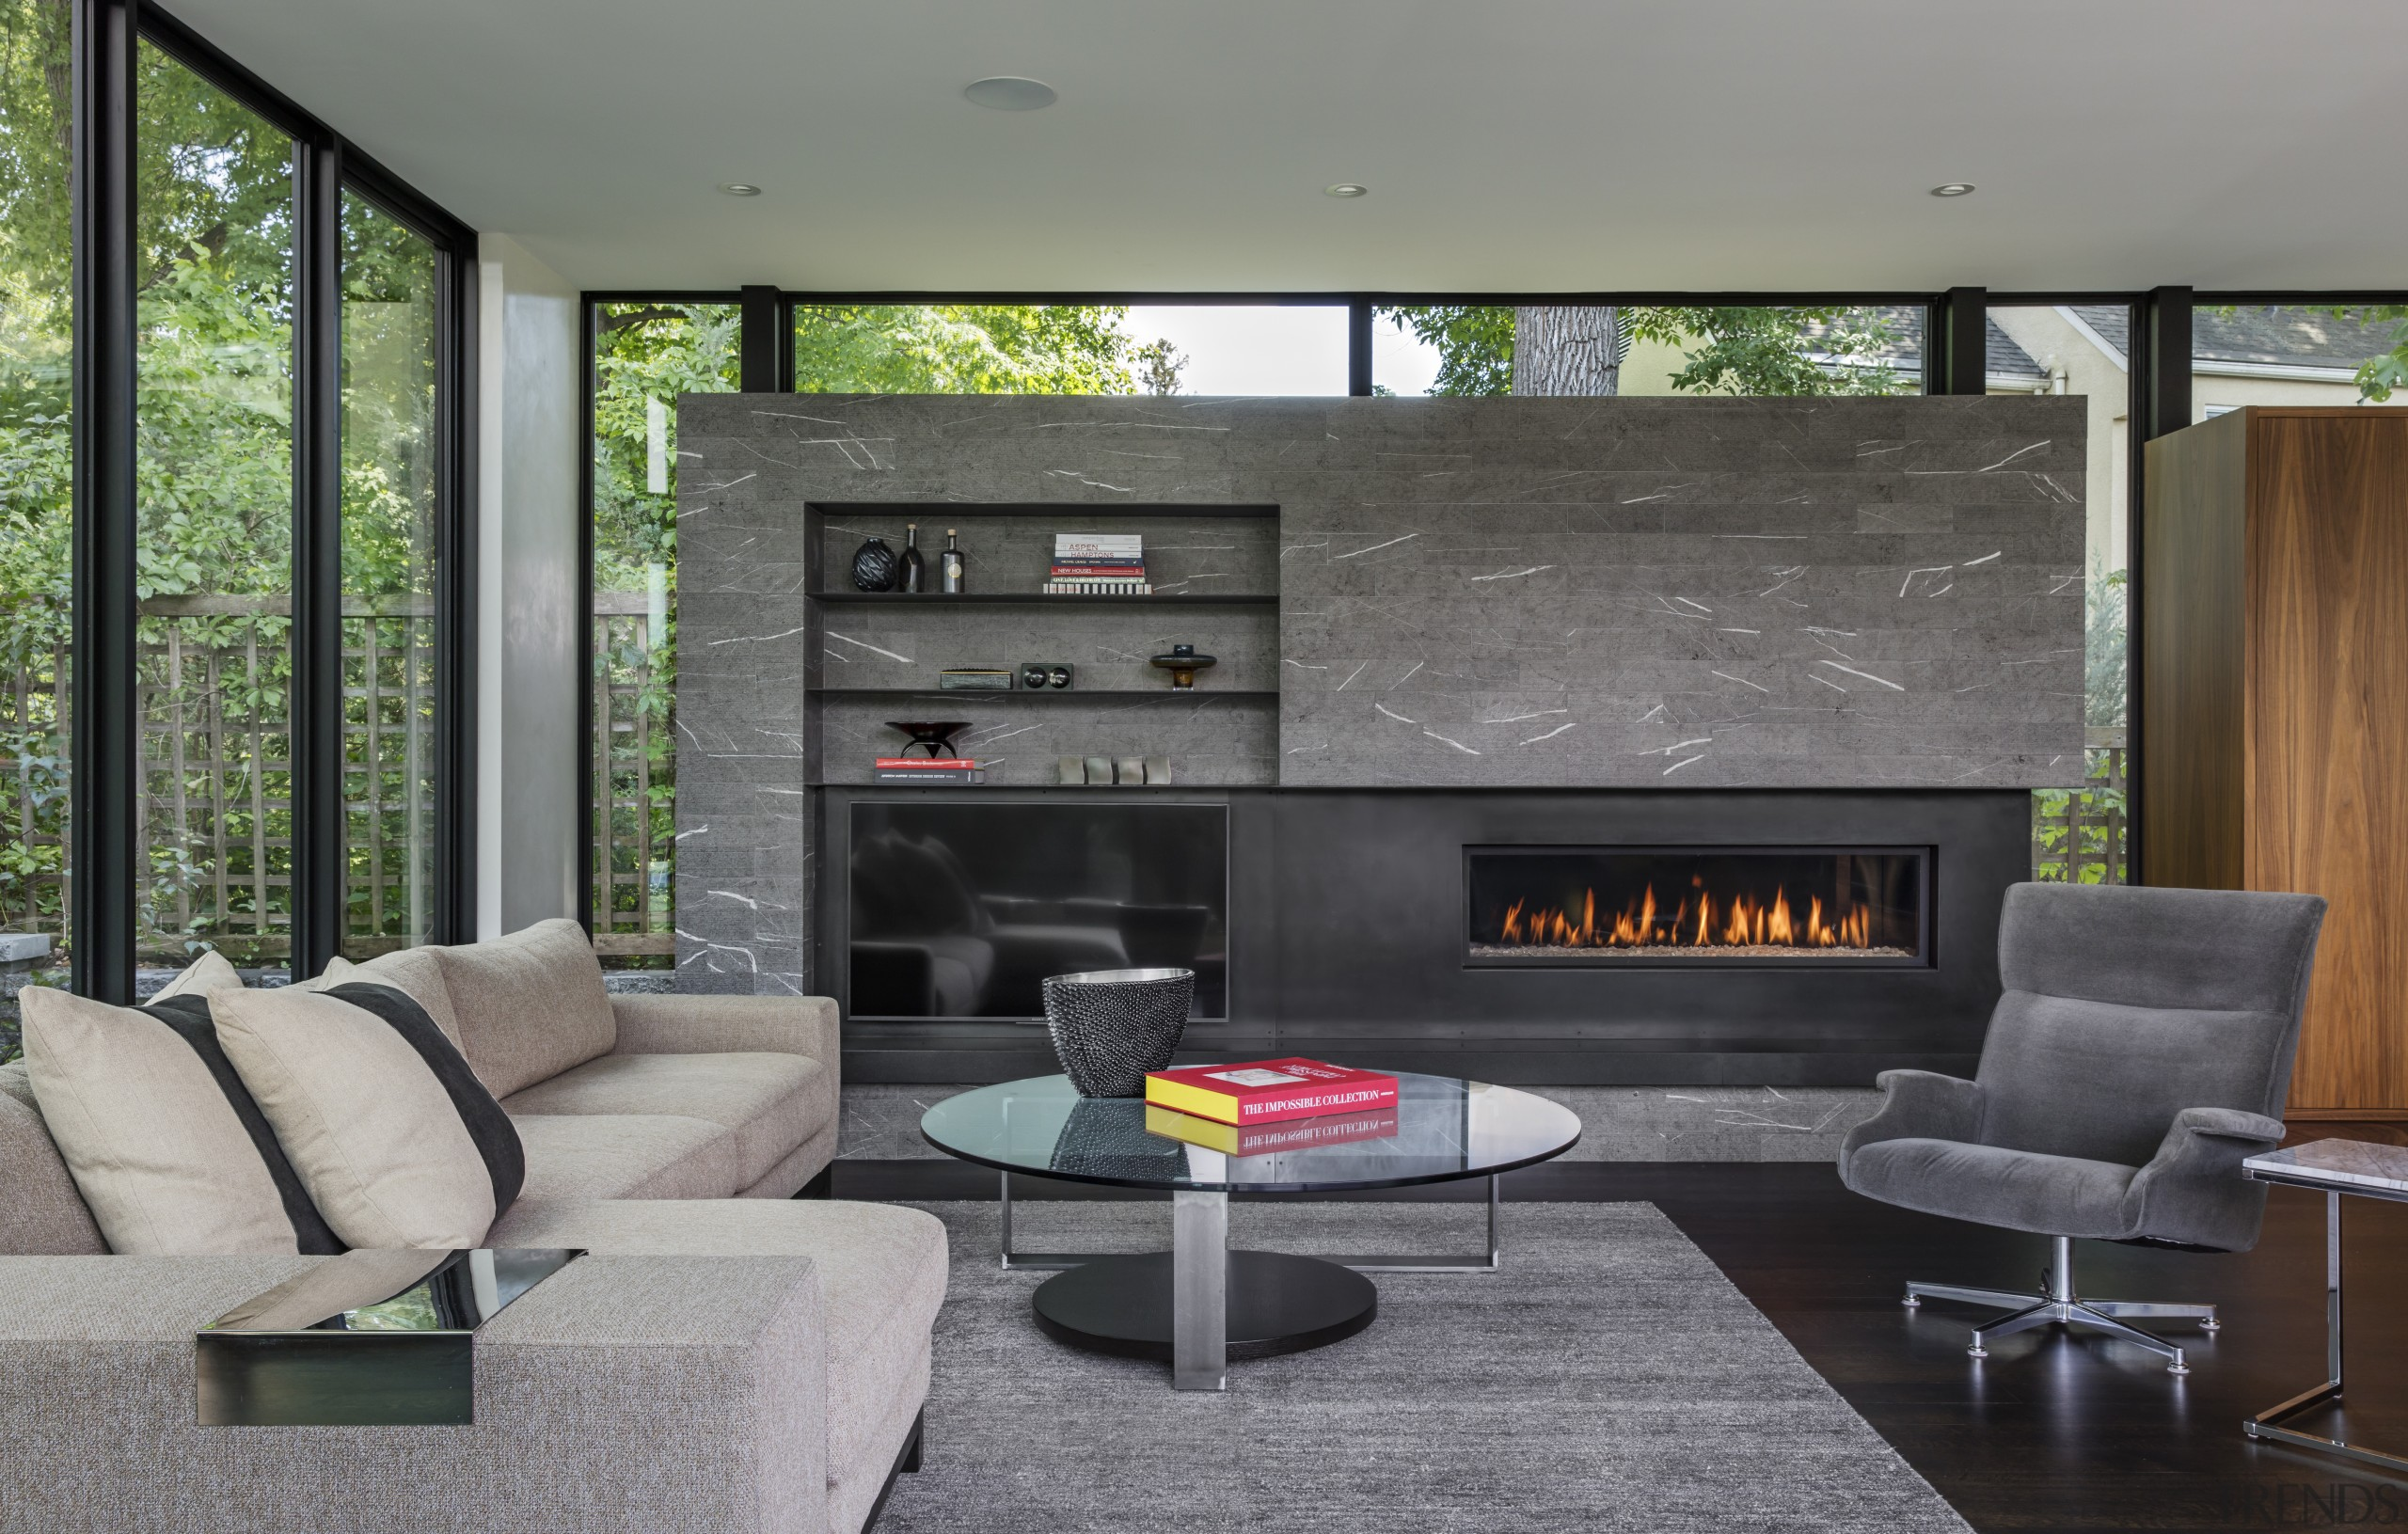 The fireplace has the sense of being a fireplace, hearth, house, interior design, living room, gray, black